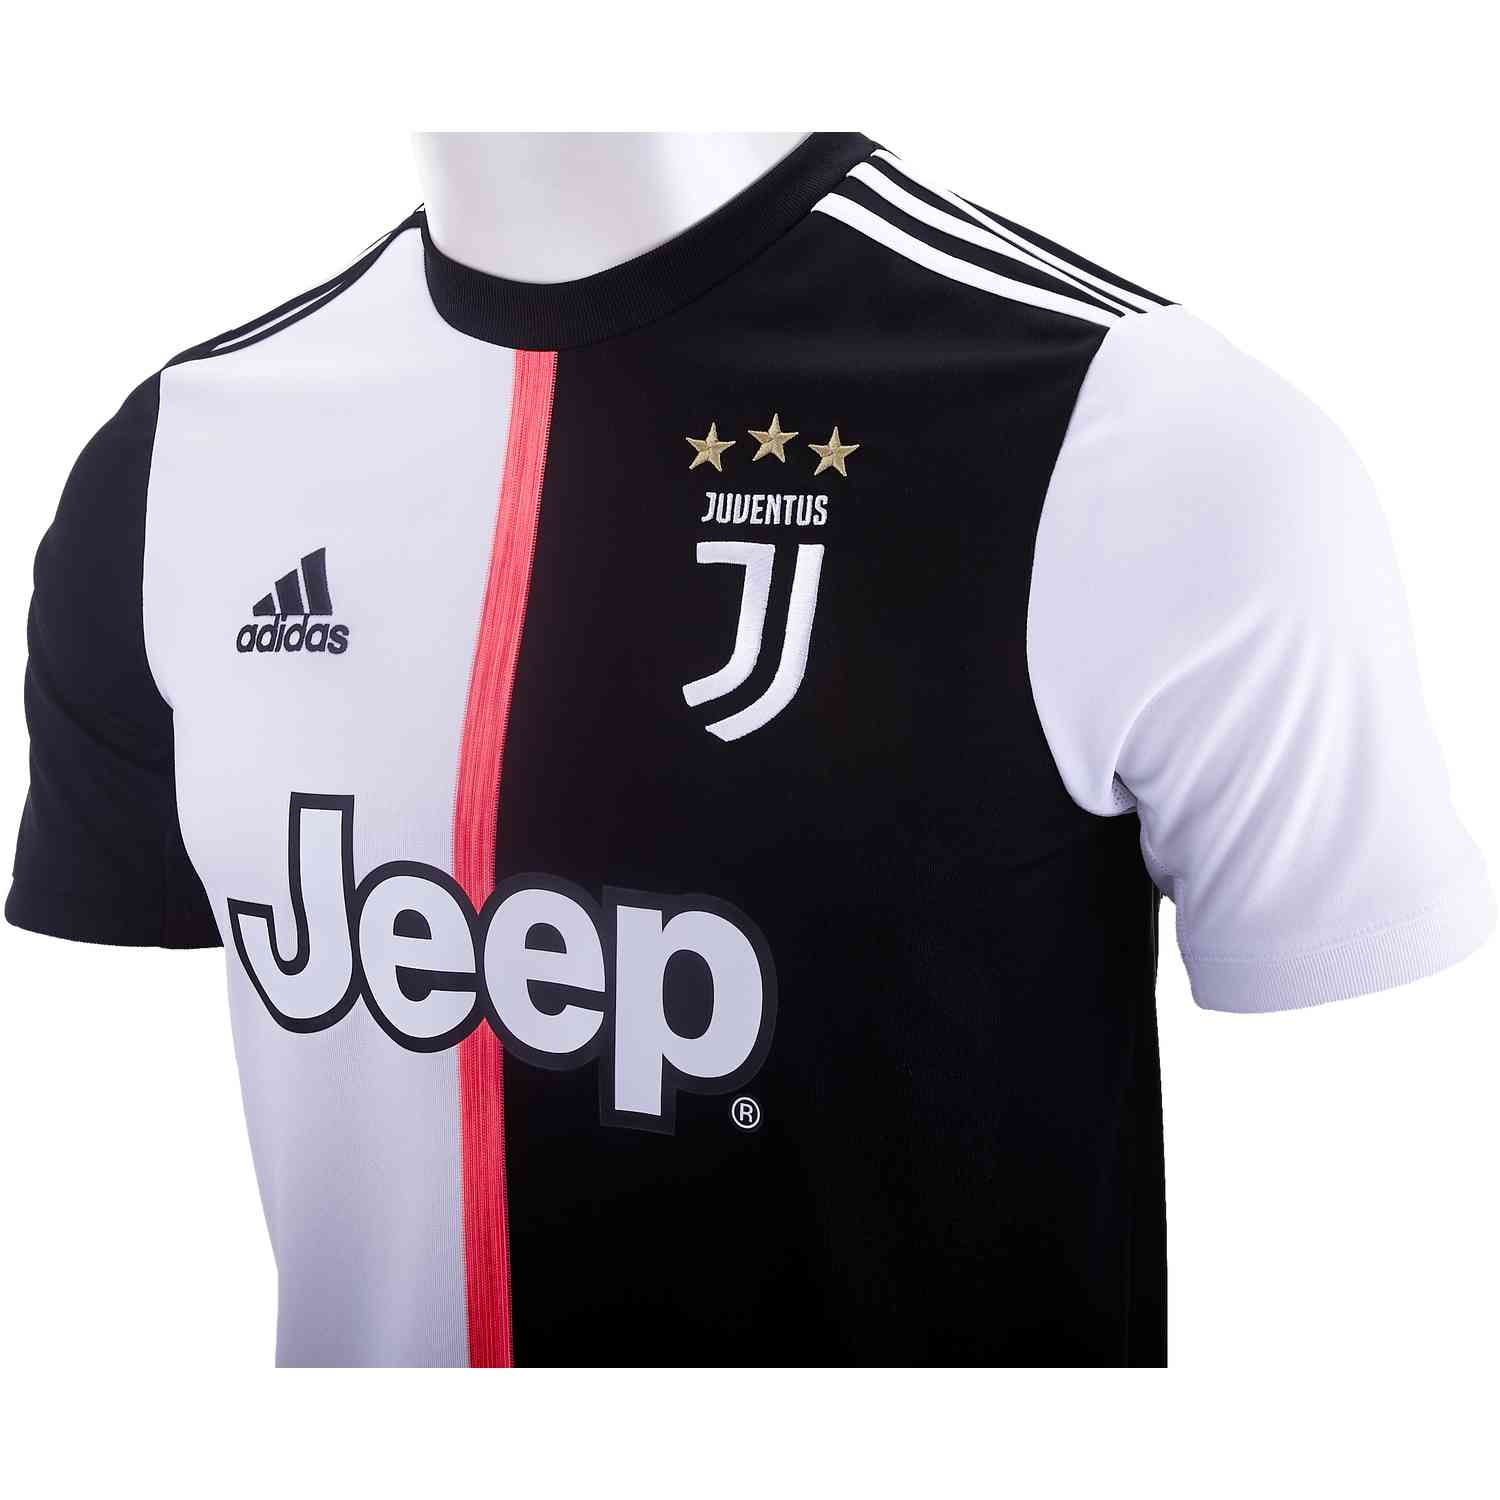 premium selection 90cca 6a74a 2019/20 Kids adidas Juventus Home Jersey - Soccer Master